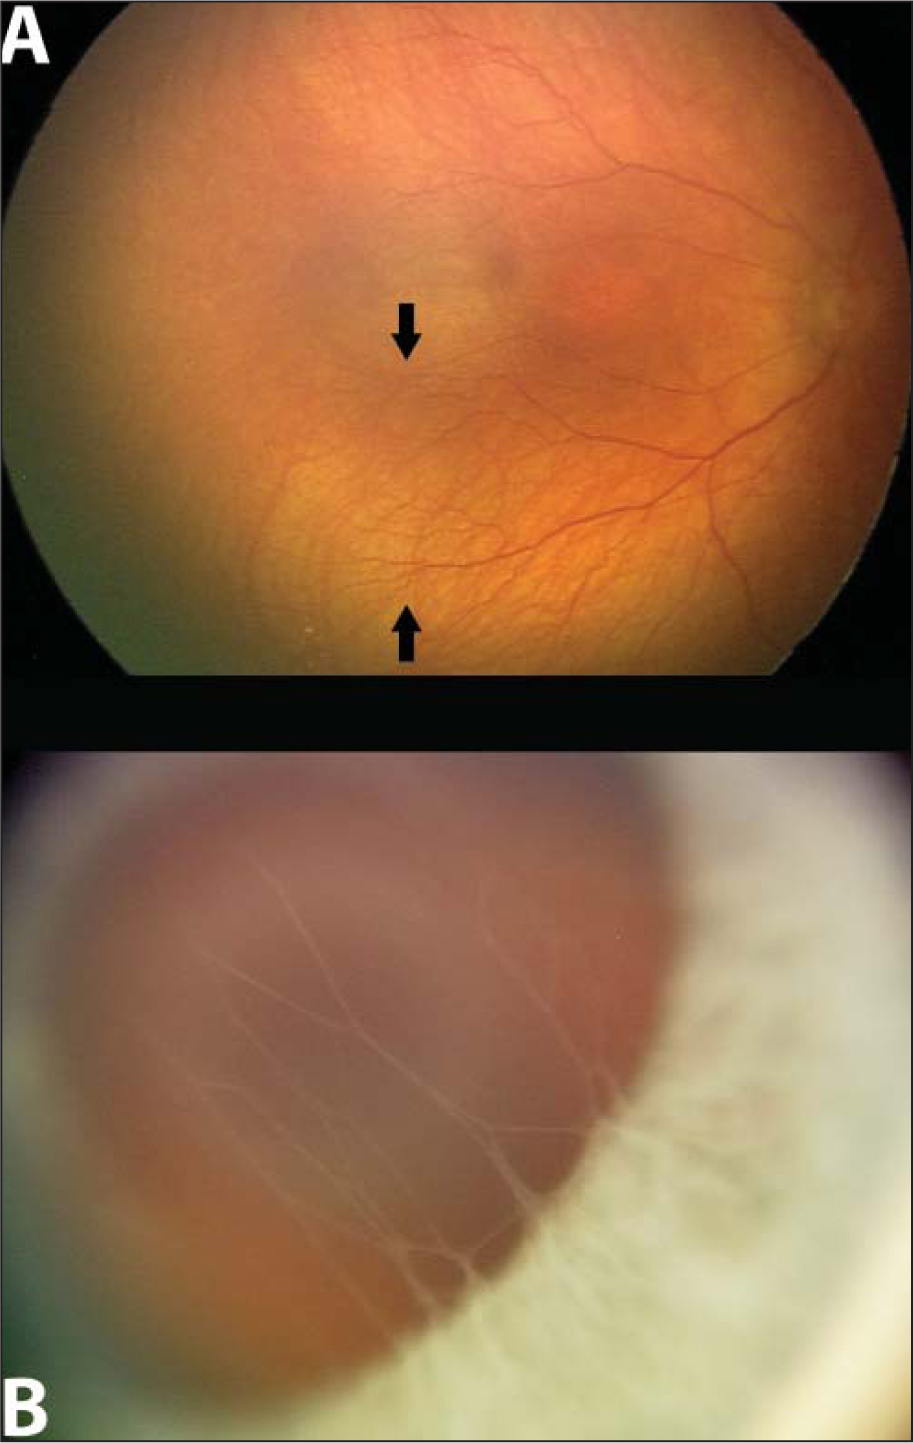 (A) RetCam fundus photograph (Clarity Medical Systems, Pleasanton, CA) of the right eye 1 month following treatment with intravitreal bevacizumab showing regression of retinopathy of prematurity and continued vascularization of the retina beyond the point where prior vascularization halted (arrows). (B) RetCam anterior segment photograph of the right eye 2 days following treatment with intravitreal bevacizumab (0.625 mg/0.025 mL) showing dramatic resolution of the tunica vasculosa lentis vessels, leaving behind ghost vessels.